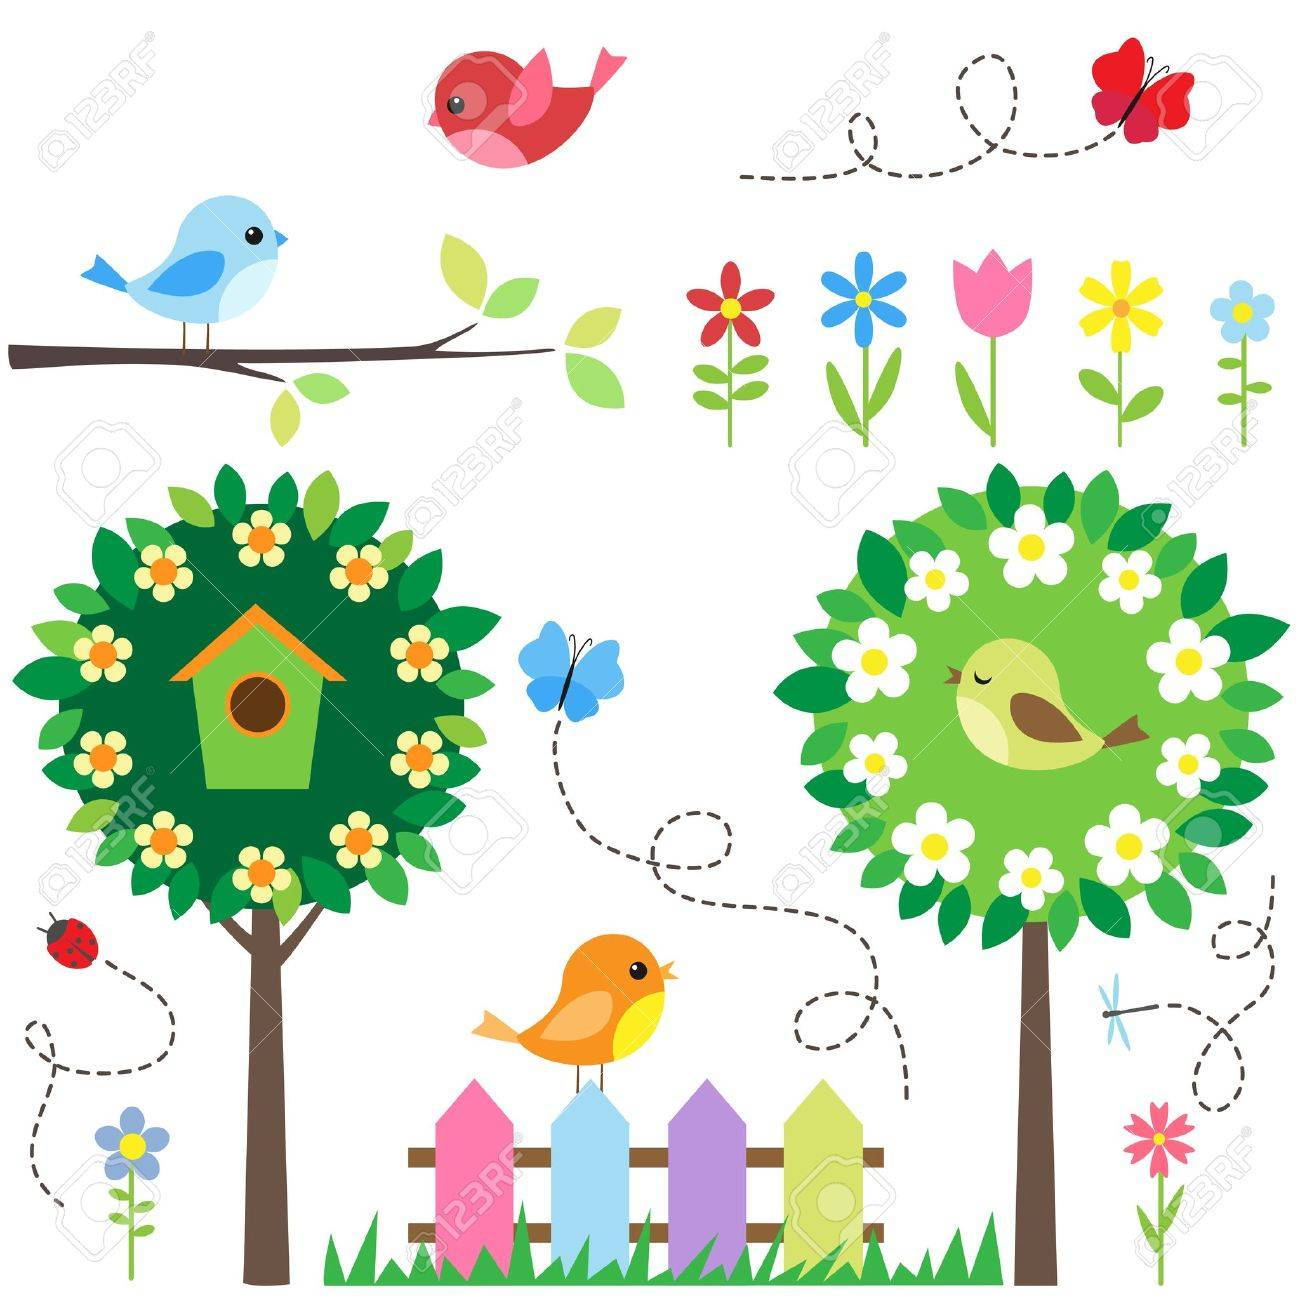 Garden set with birds, blooming trees, flowers and insects. Stock Vector - 12393576